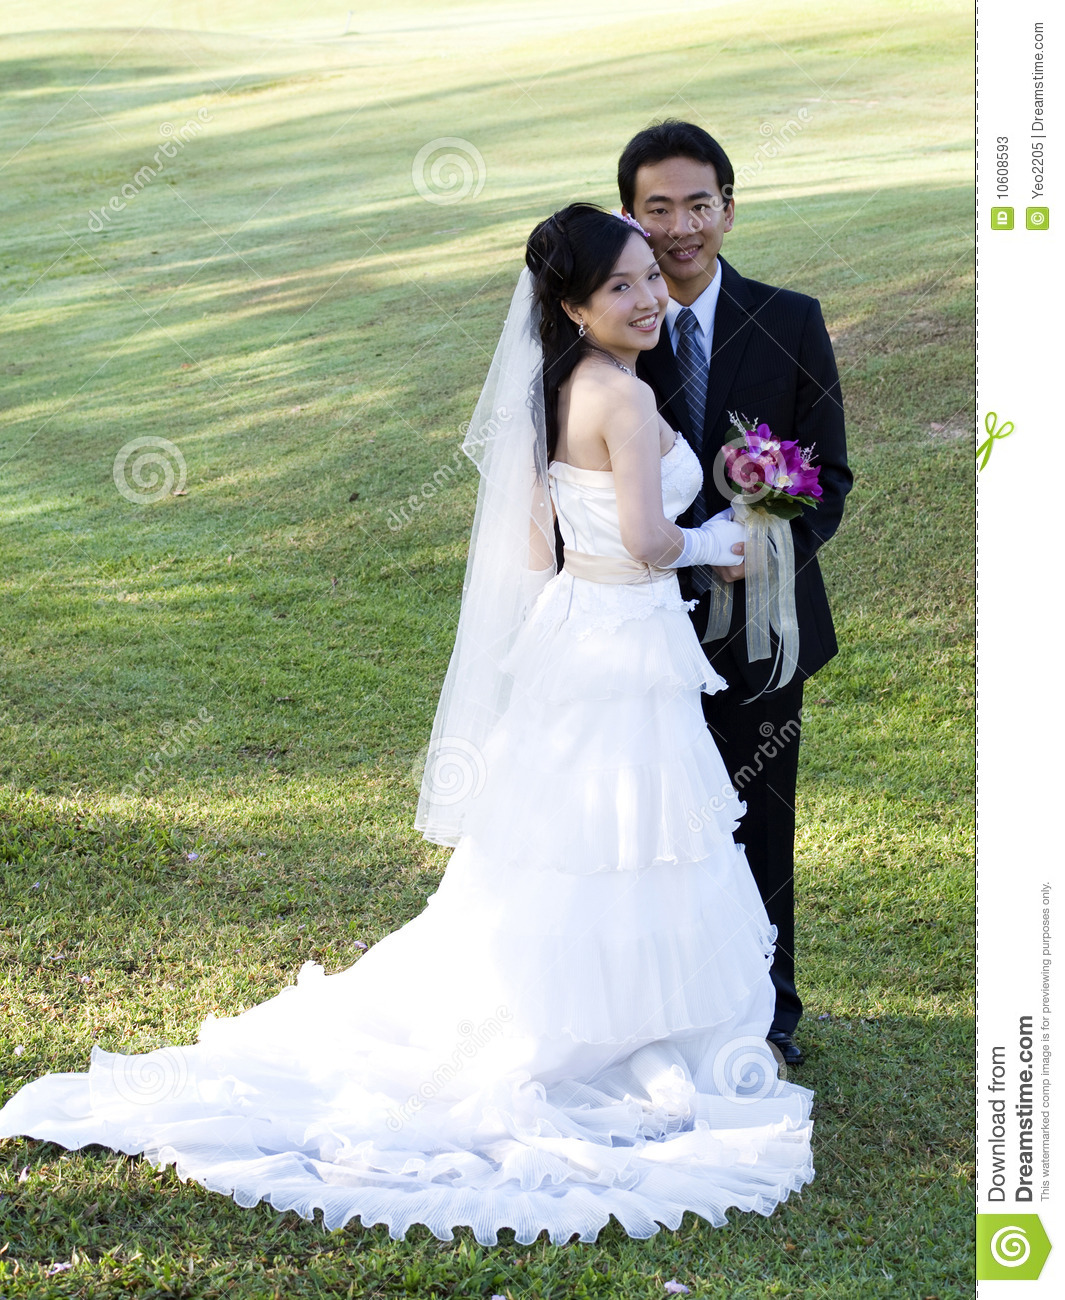 Wedding couple holding flower bouquet smiling in the golf course.